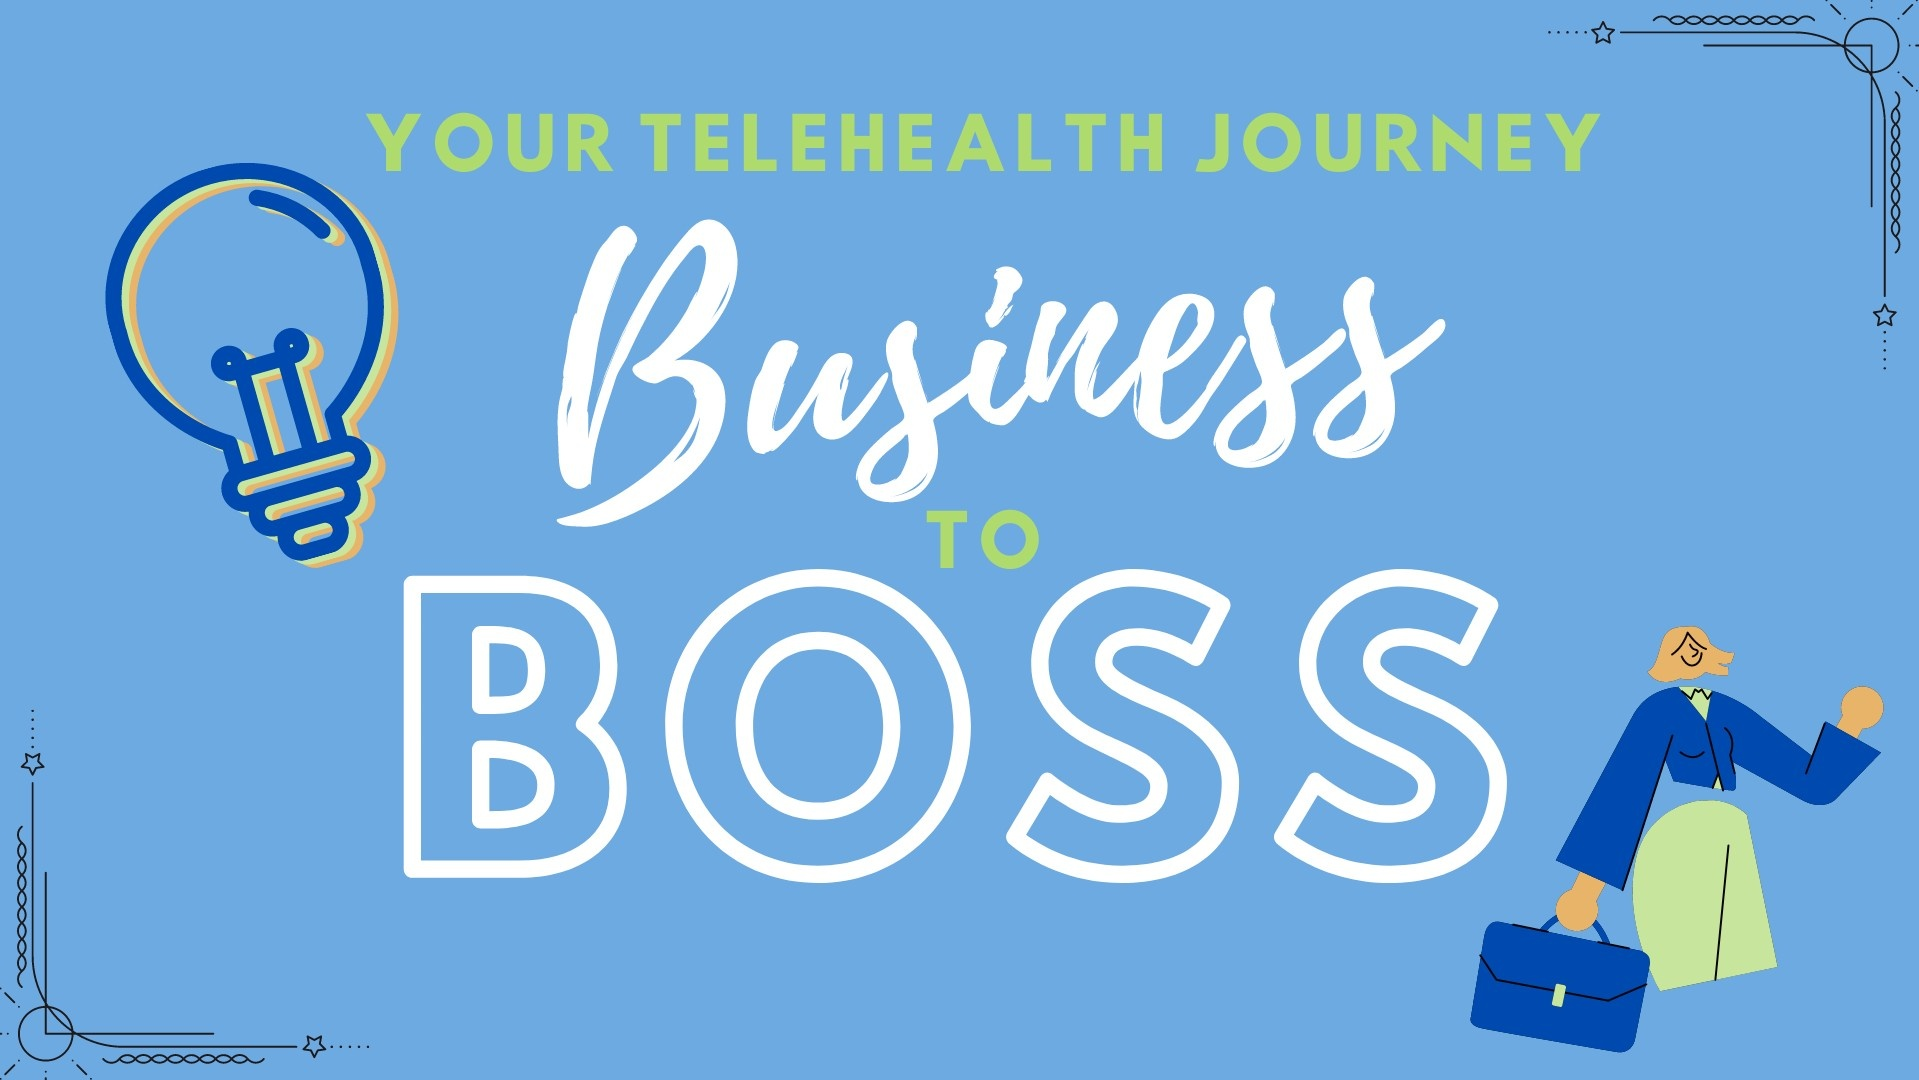 Start a telehealth practice. Business to Boss. Zoom for telehealth. Telehealth Occupational therapy.